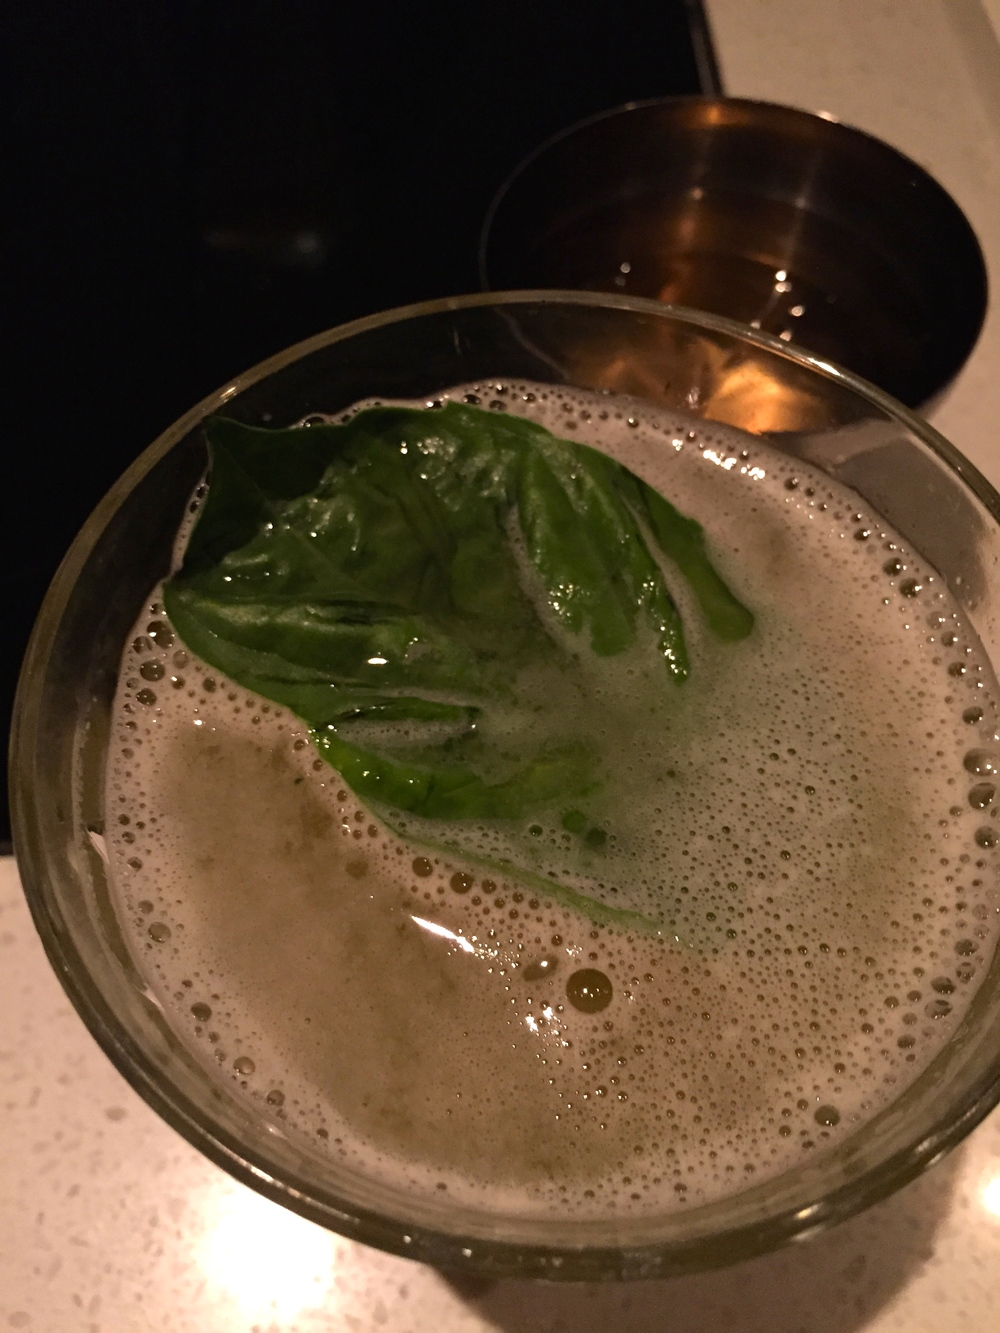 Basil cocktail.